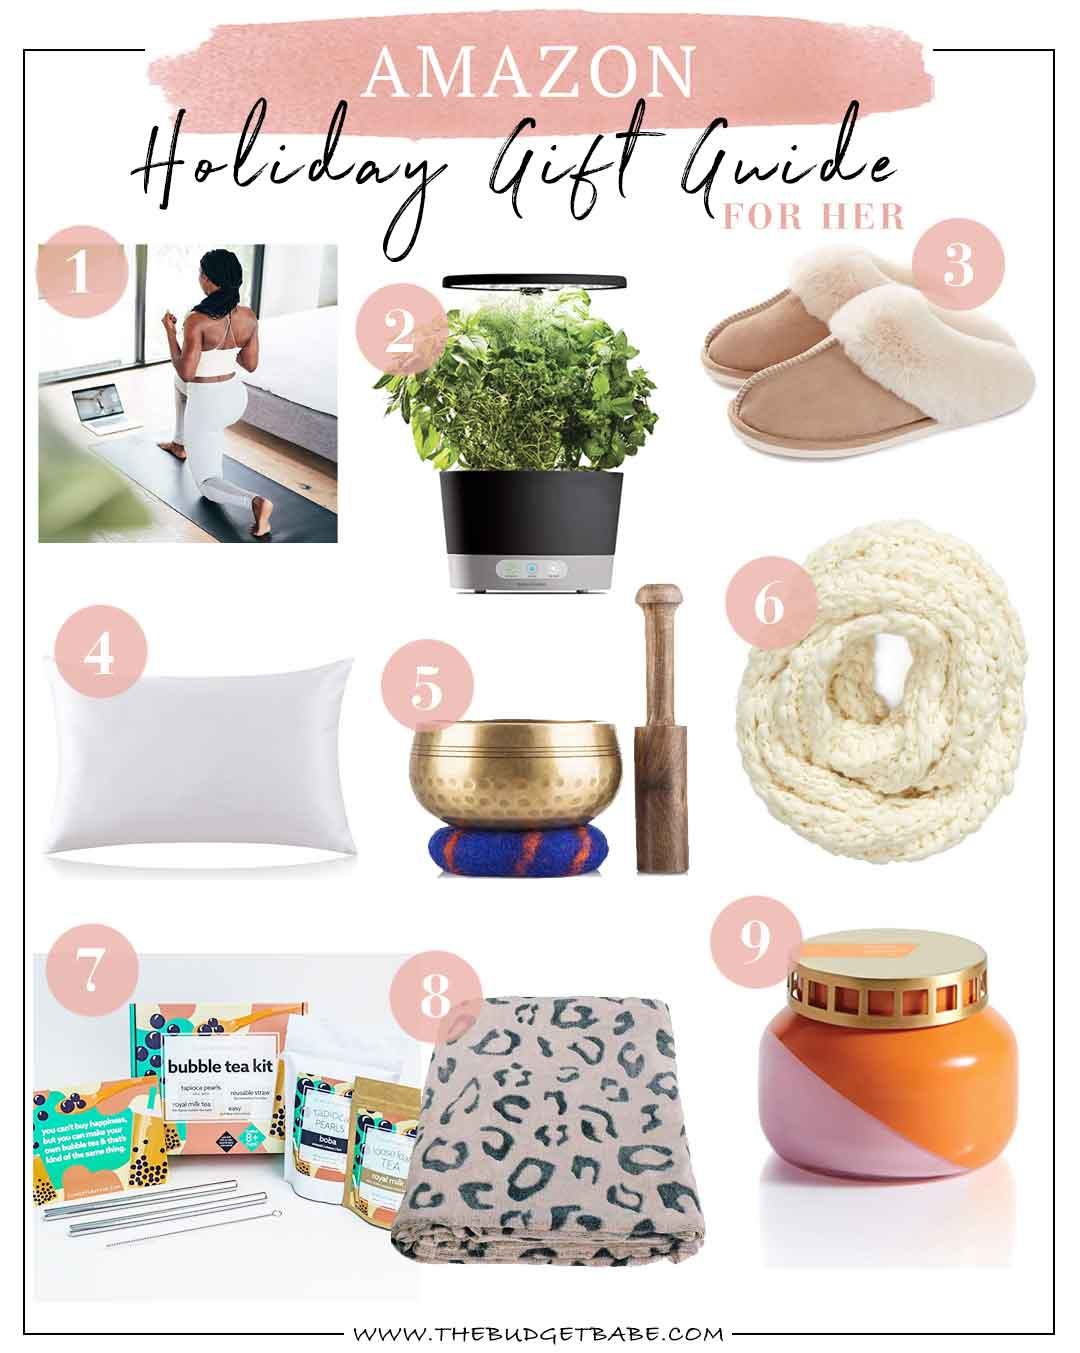 Amazon Gift Guide for Her Holiday Edition